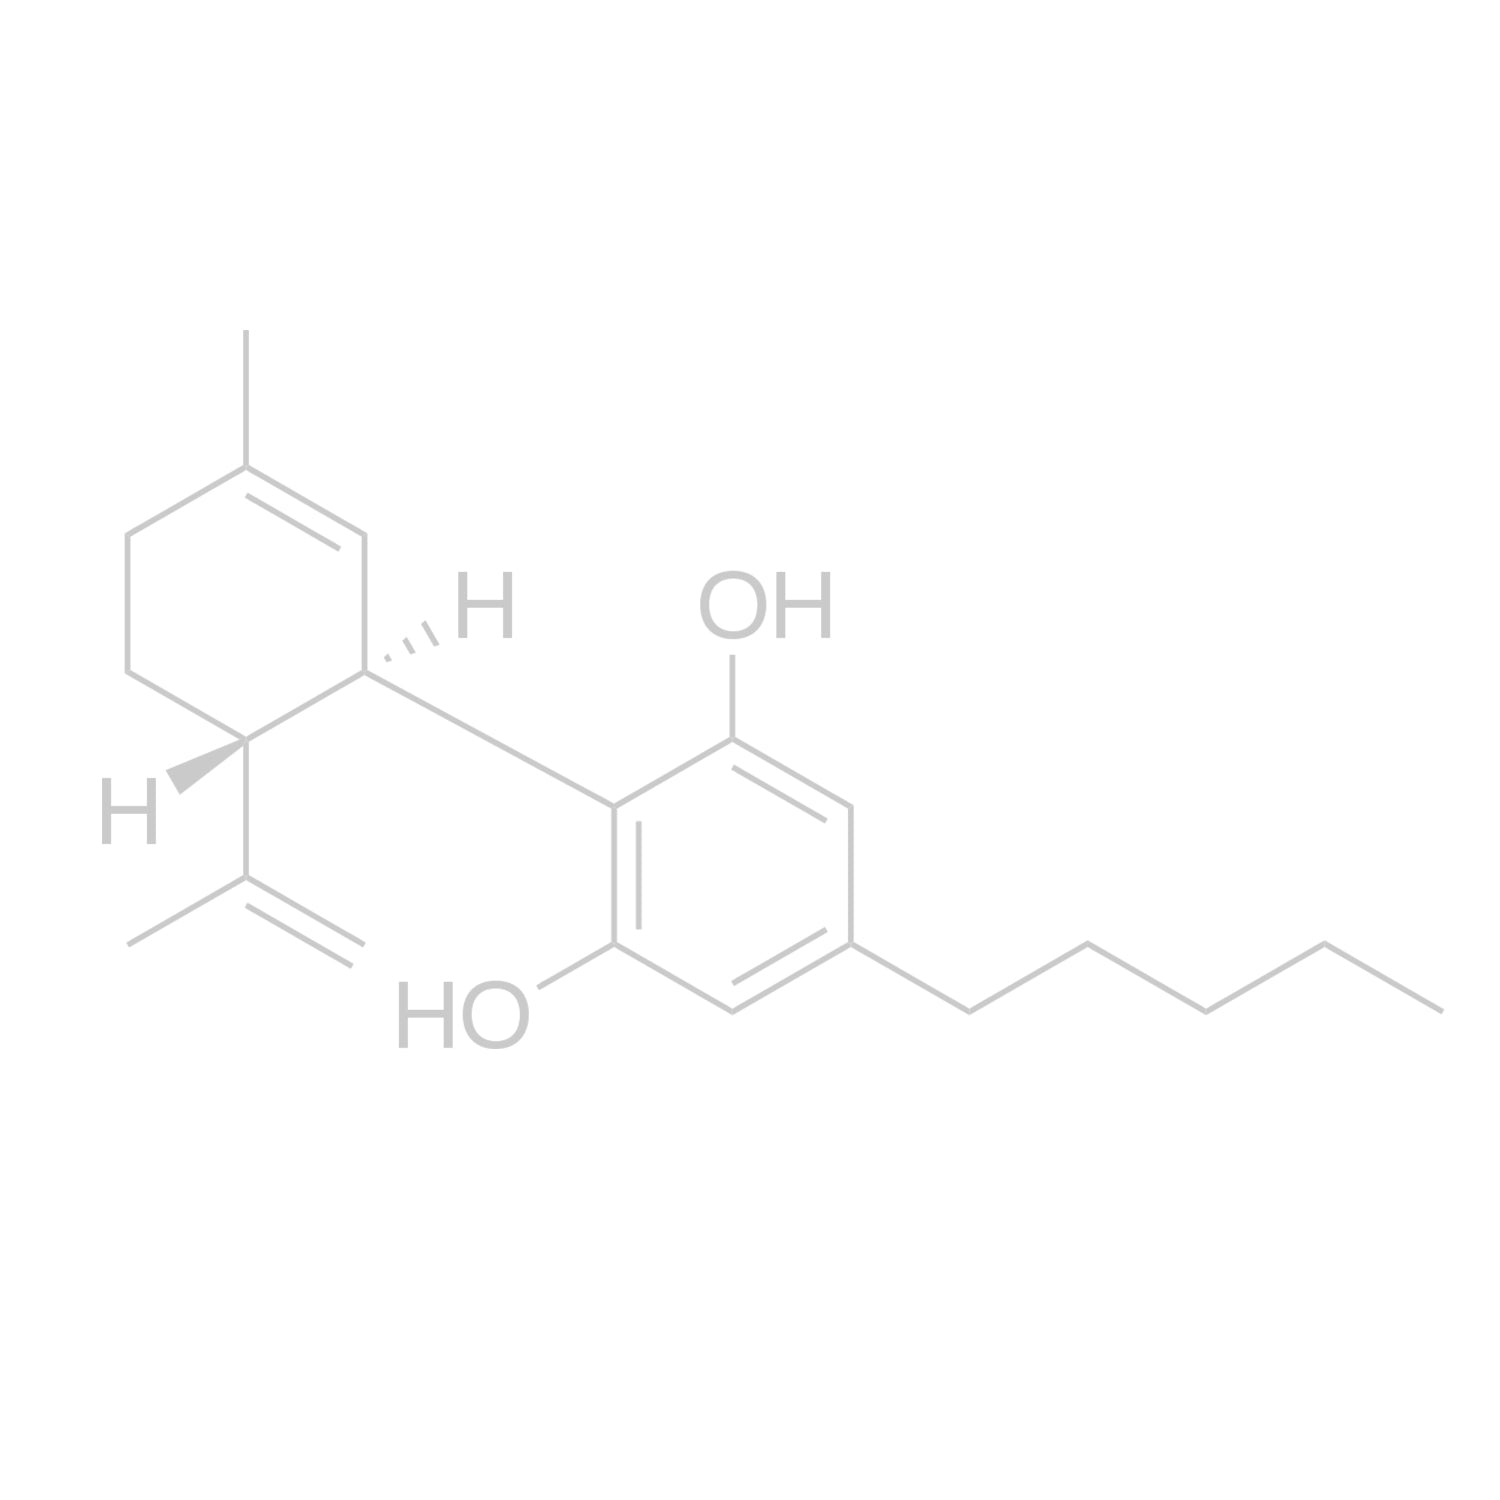 pure cbd , cbd oil products , endocannabinoid system , intended to diagnose treat , high quality cbd